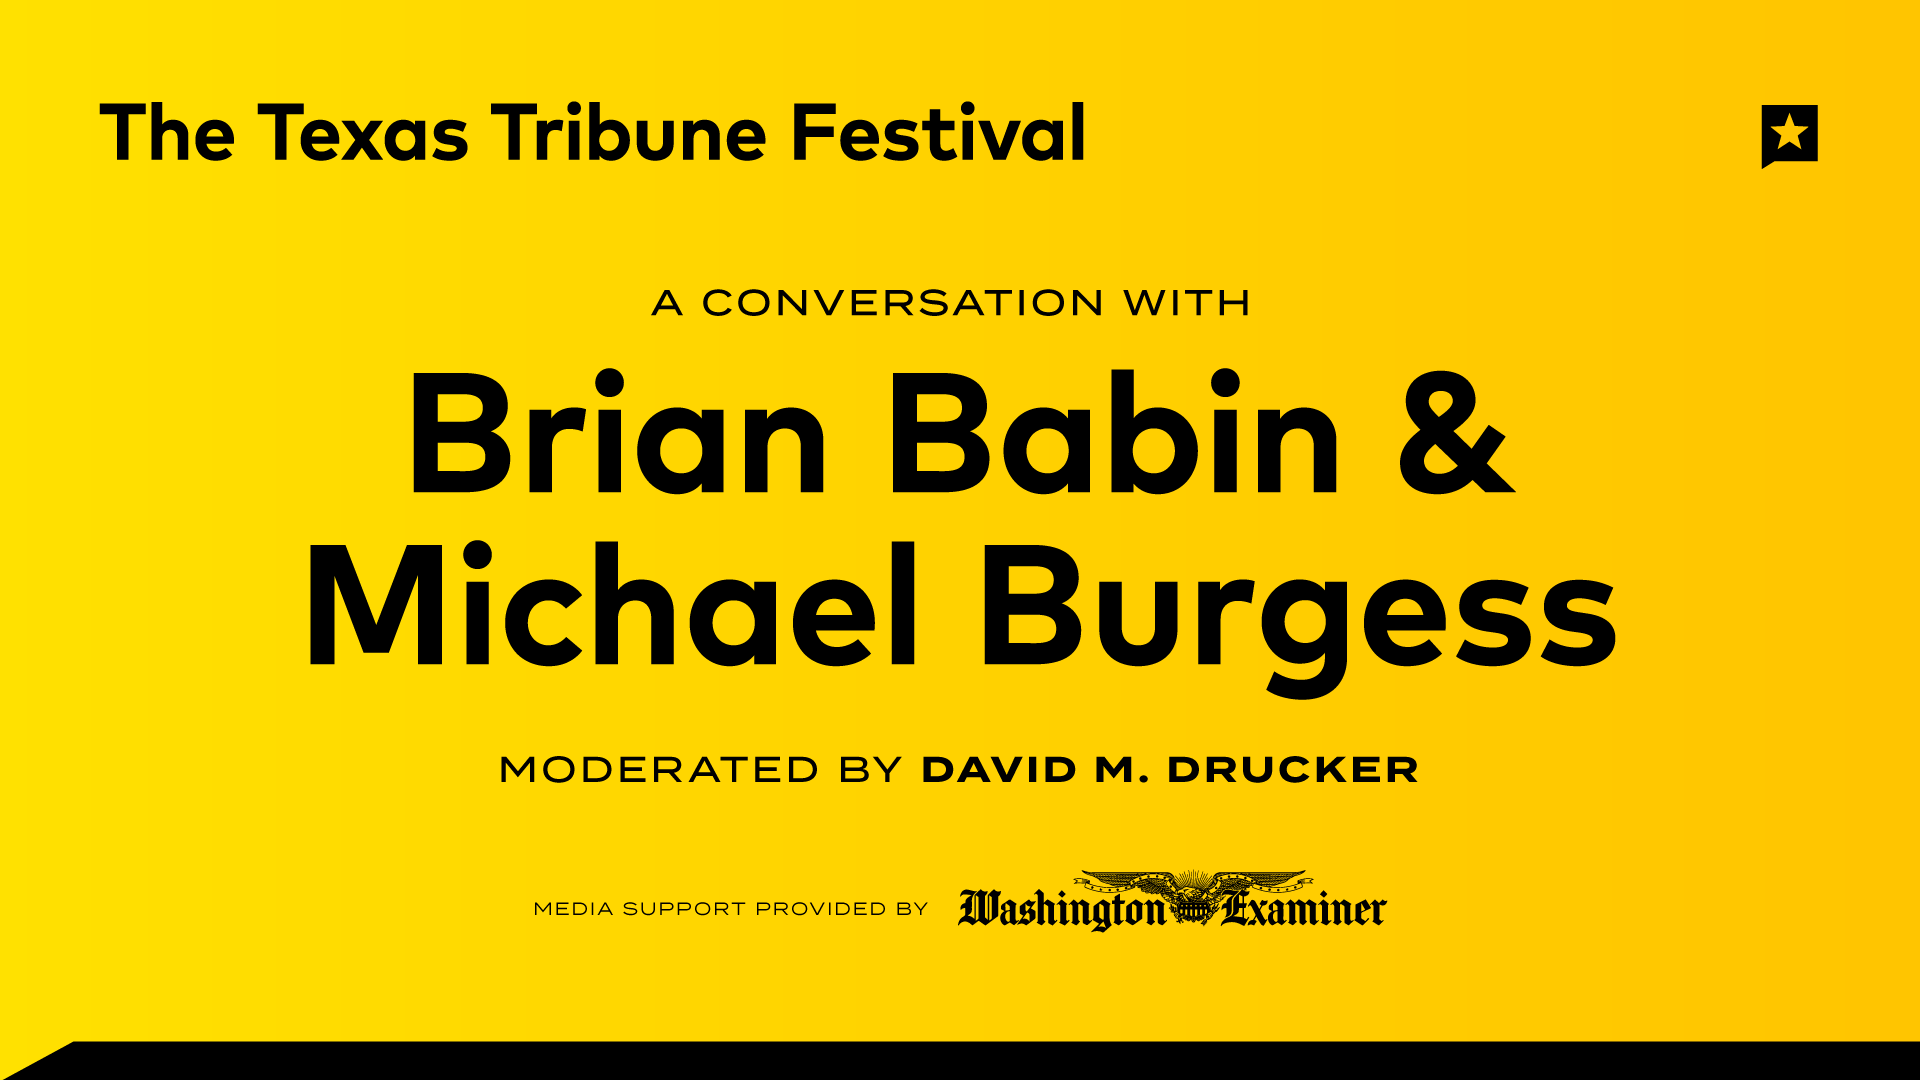 A Conversation with Brian Babin and Michael Burgess